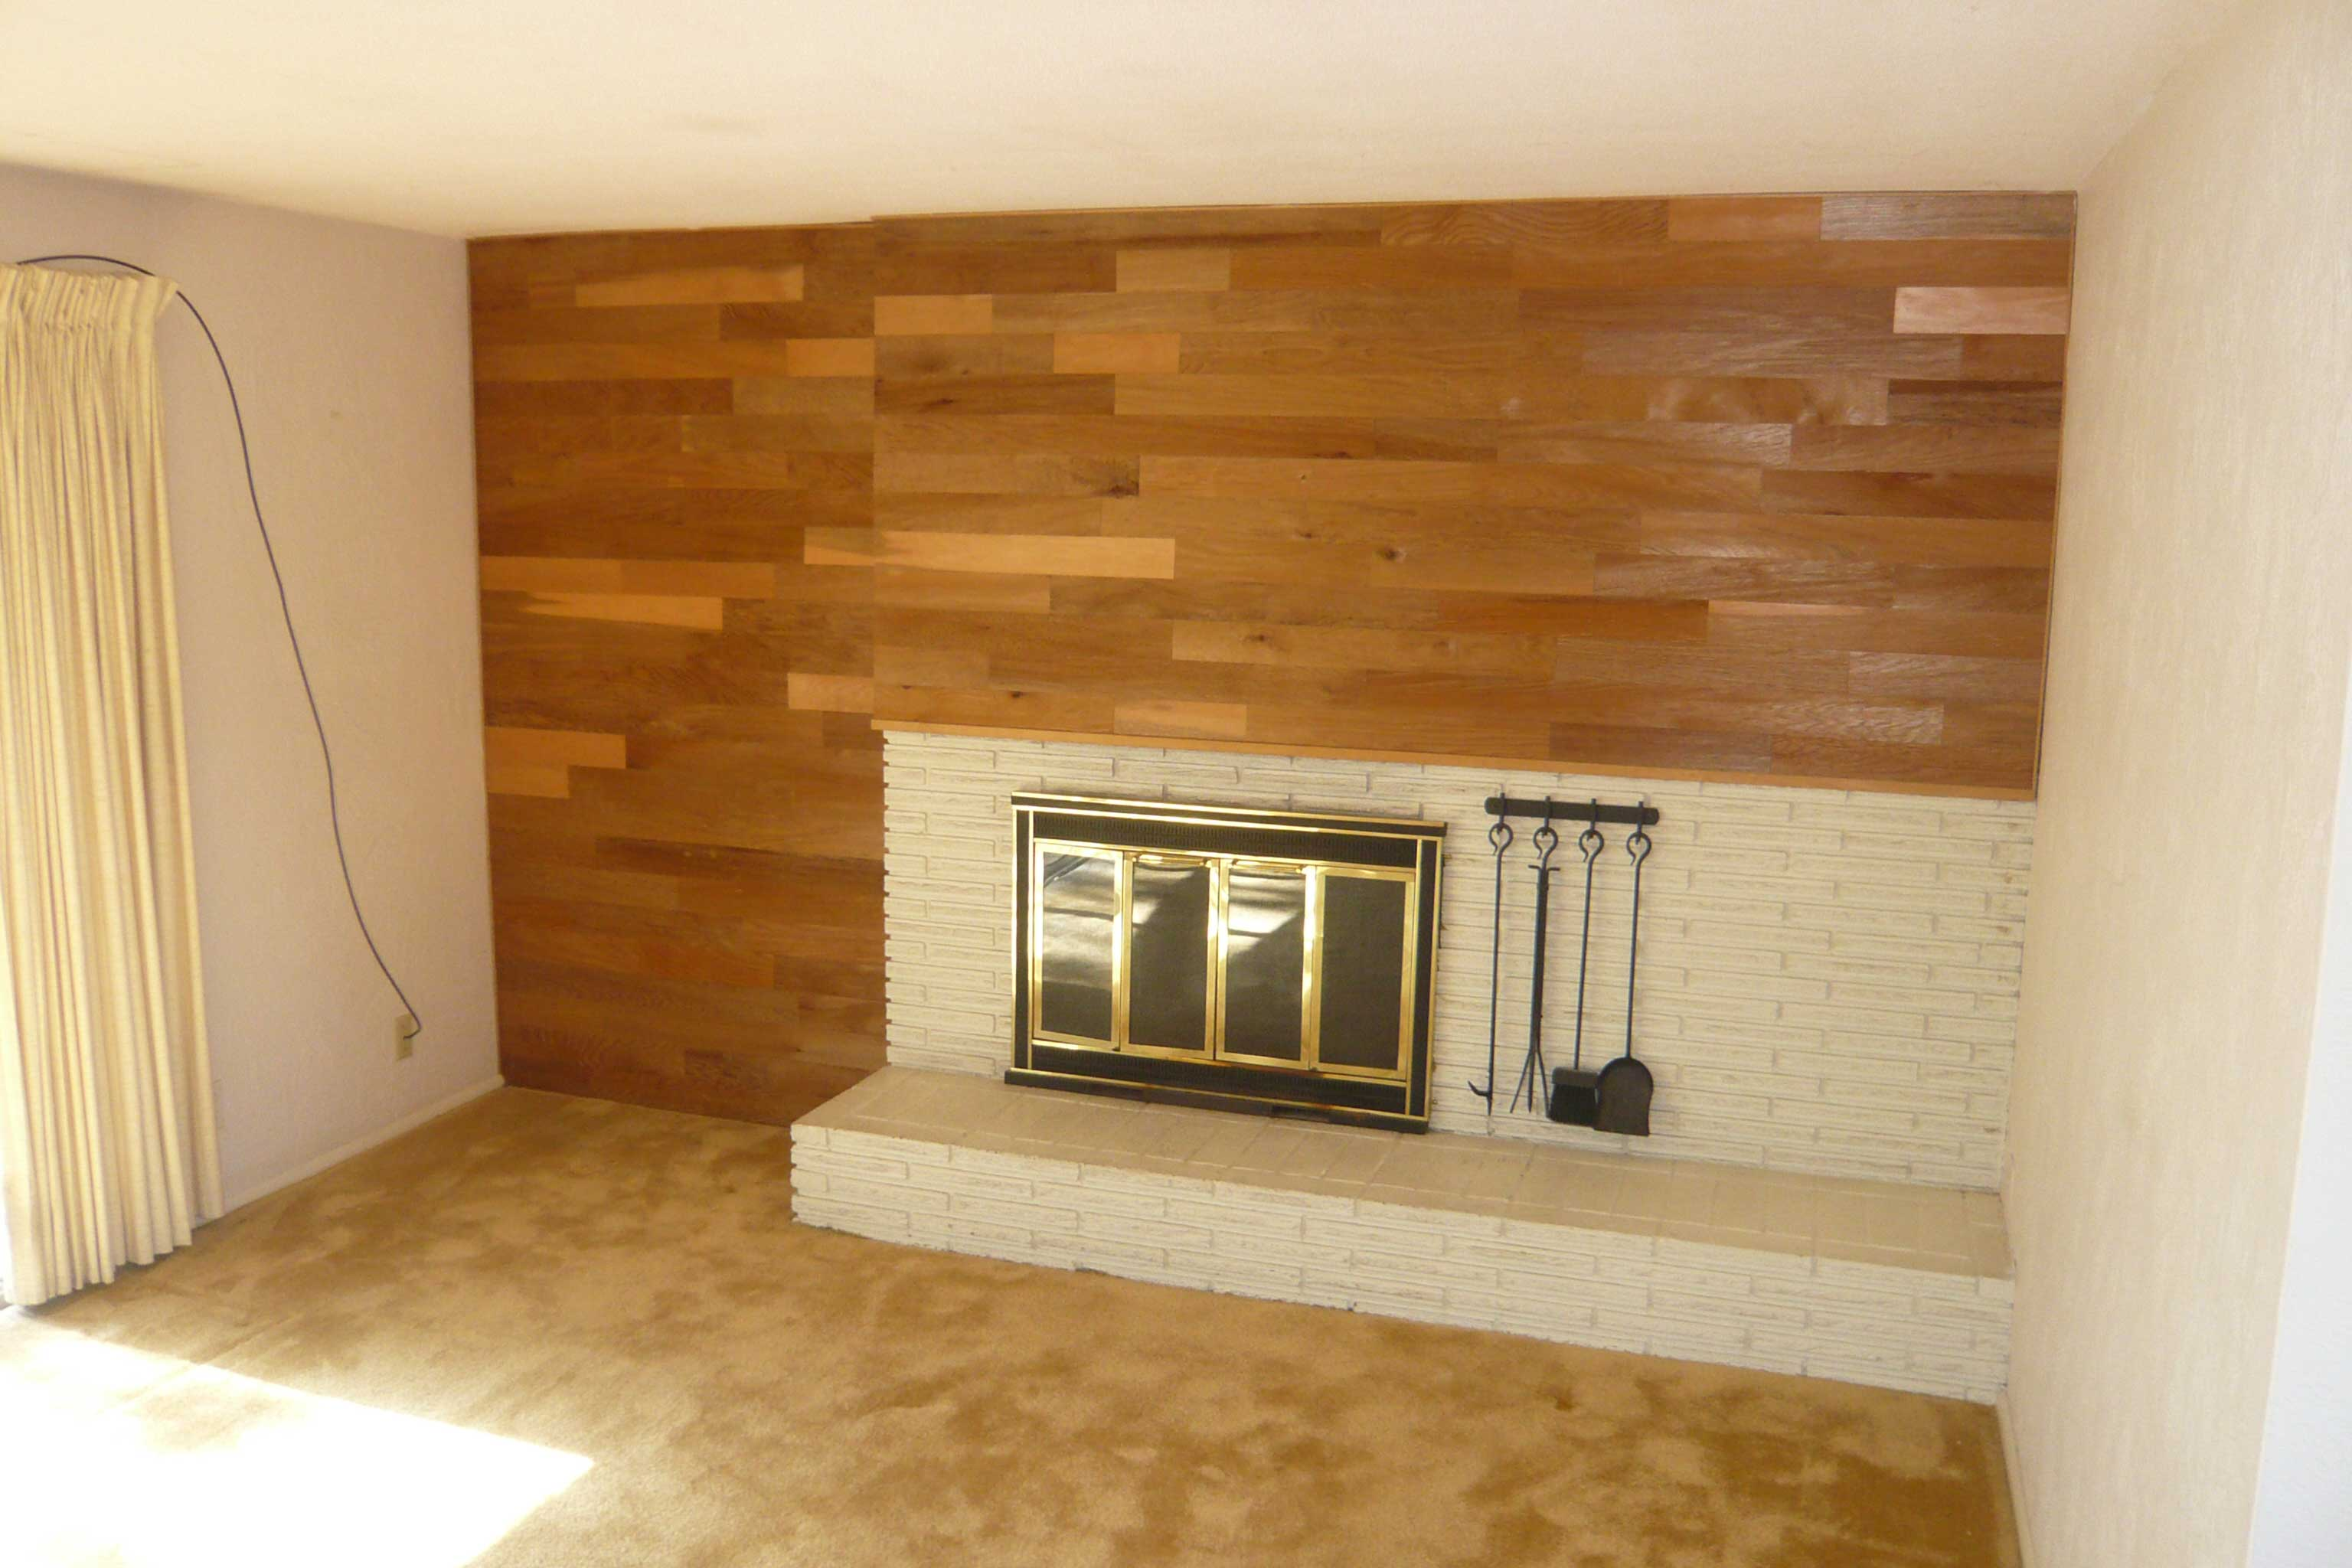 Brick Fireplace Remodel - Brick Wall Fireplace Remodel